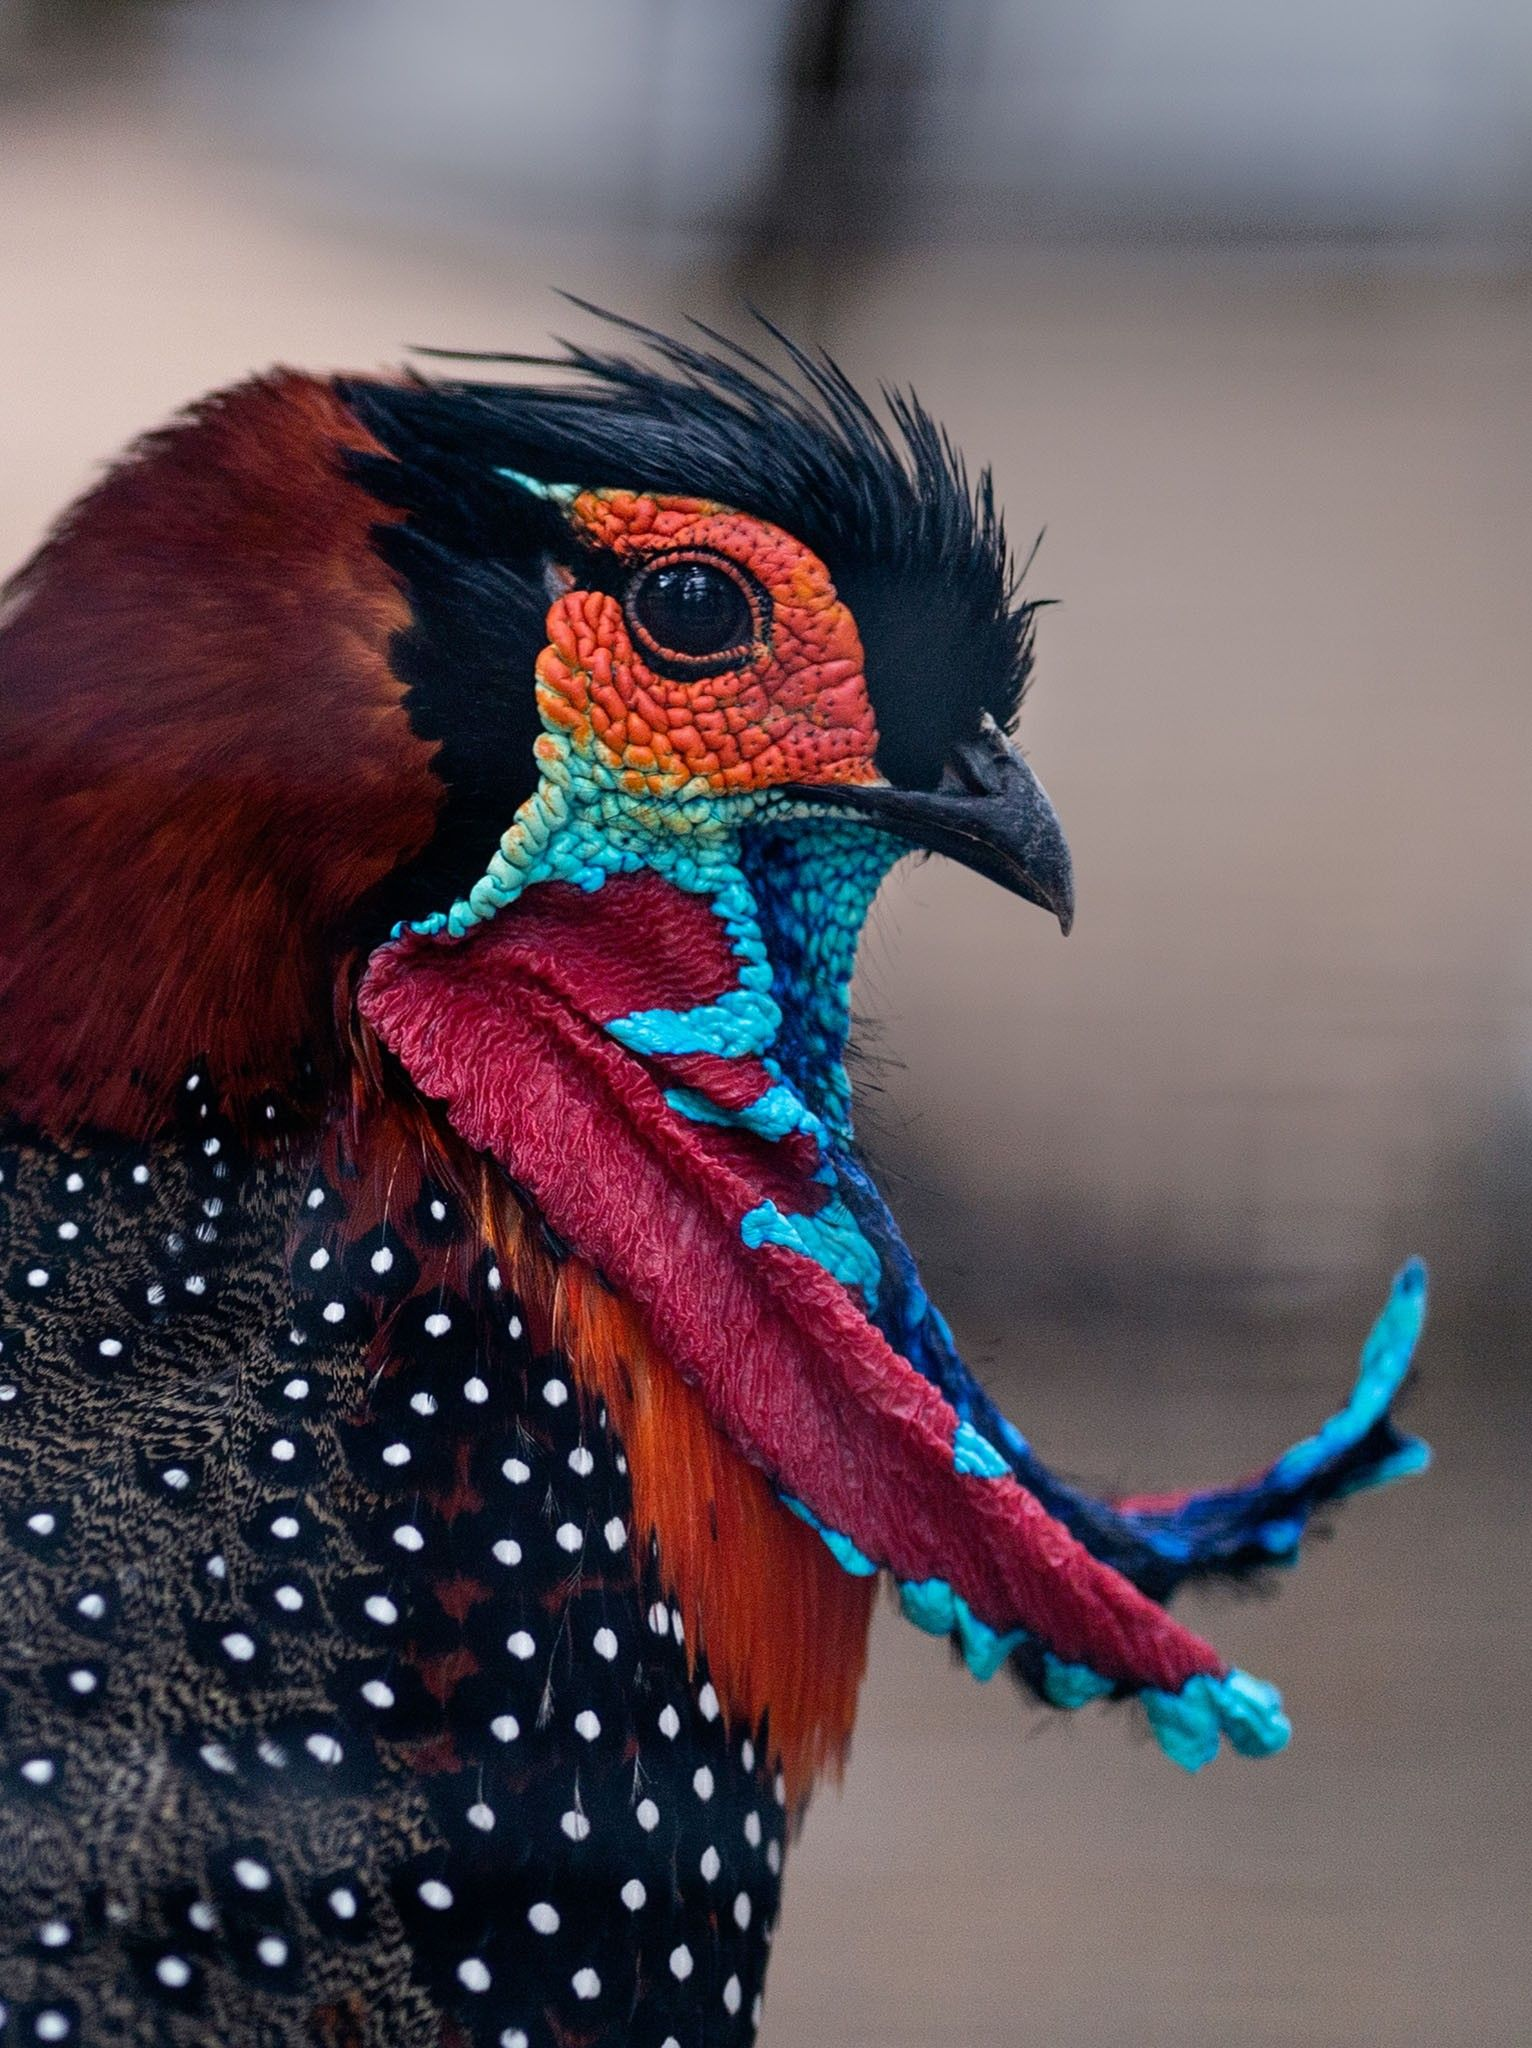 The 'king of birds' dresses the part when pursuing a mate | National Geographic